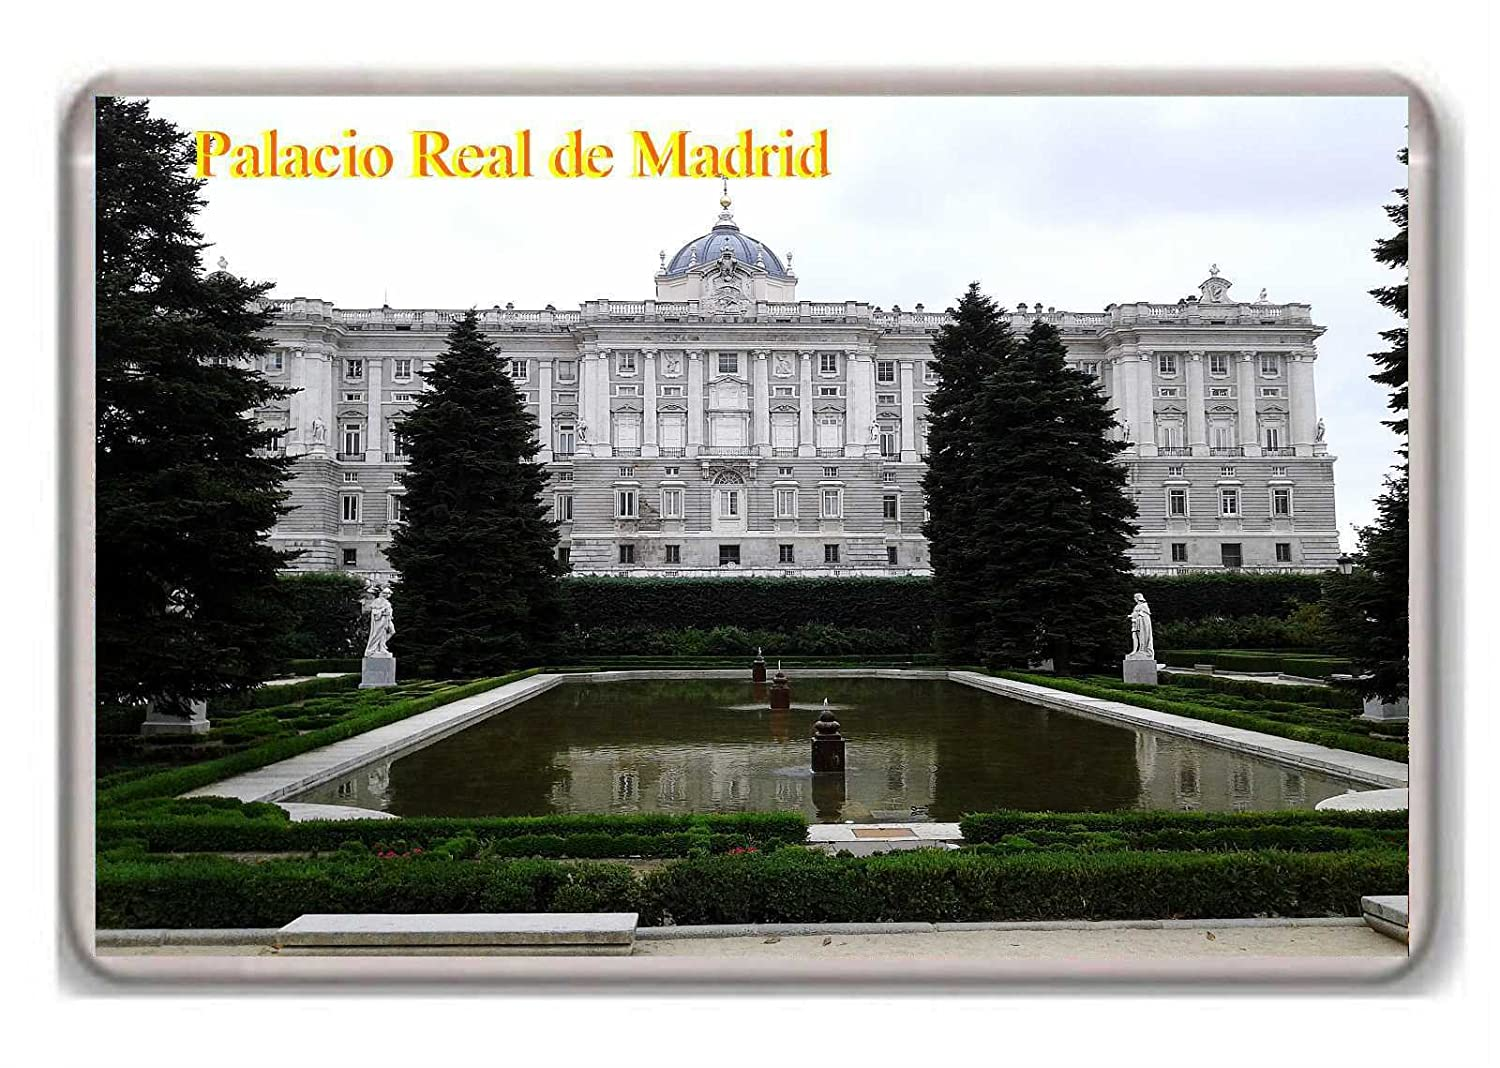 Photosiotas Spain/Palacio Real de Madrid/fridge magnet.!!! - Calamita da frigo: Amazon.es: Hogar